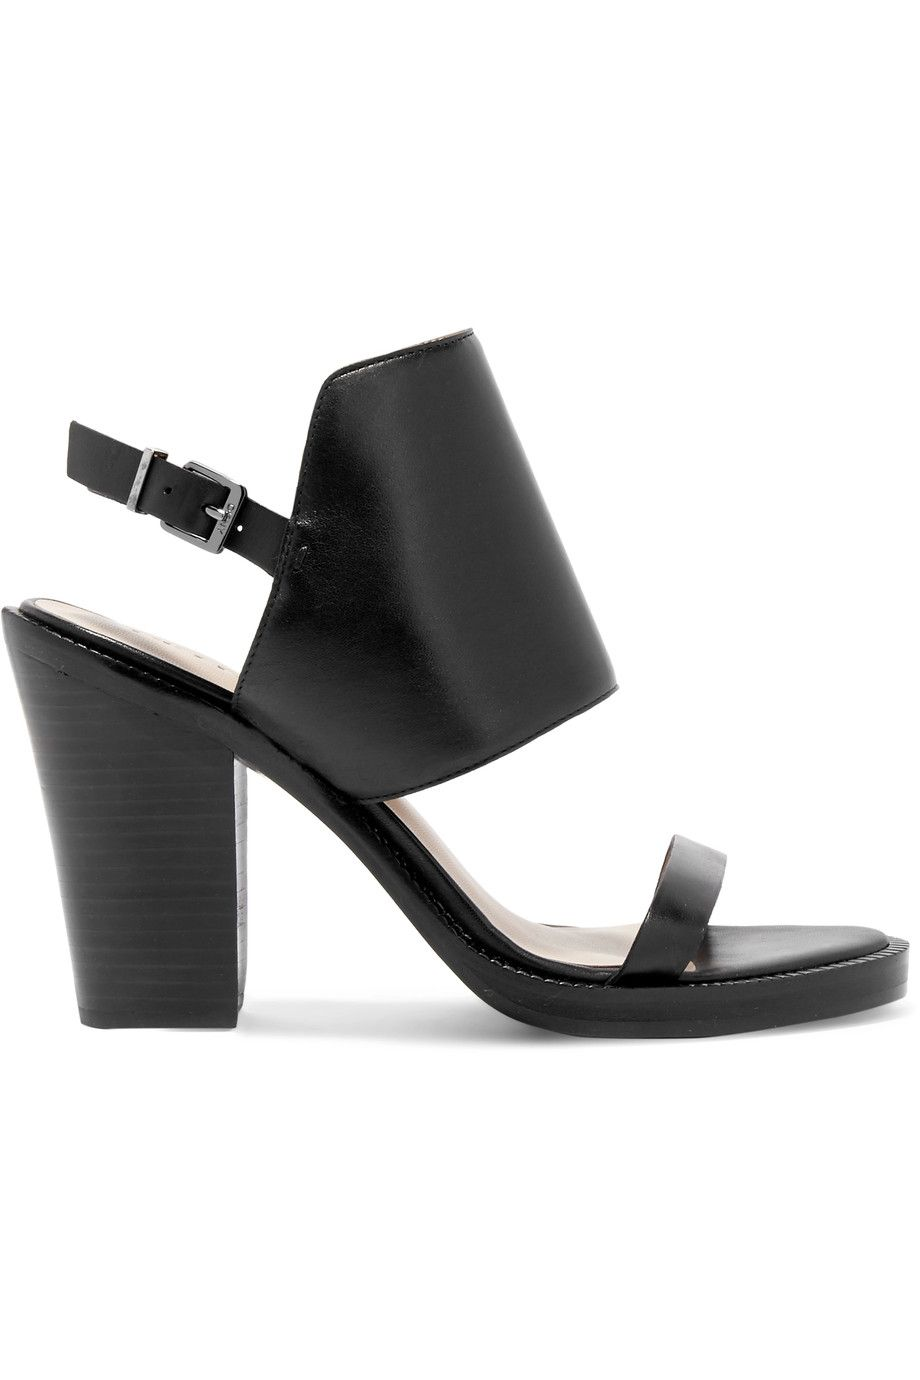 DKNY. Black High Heel SandalsLeather ...